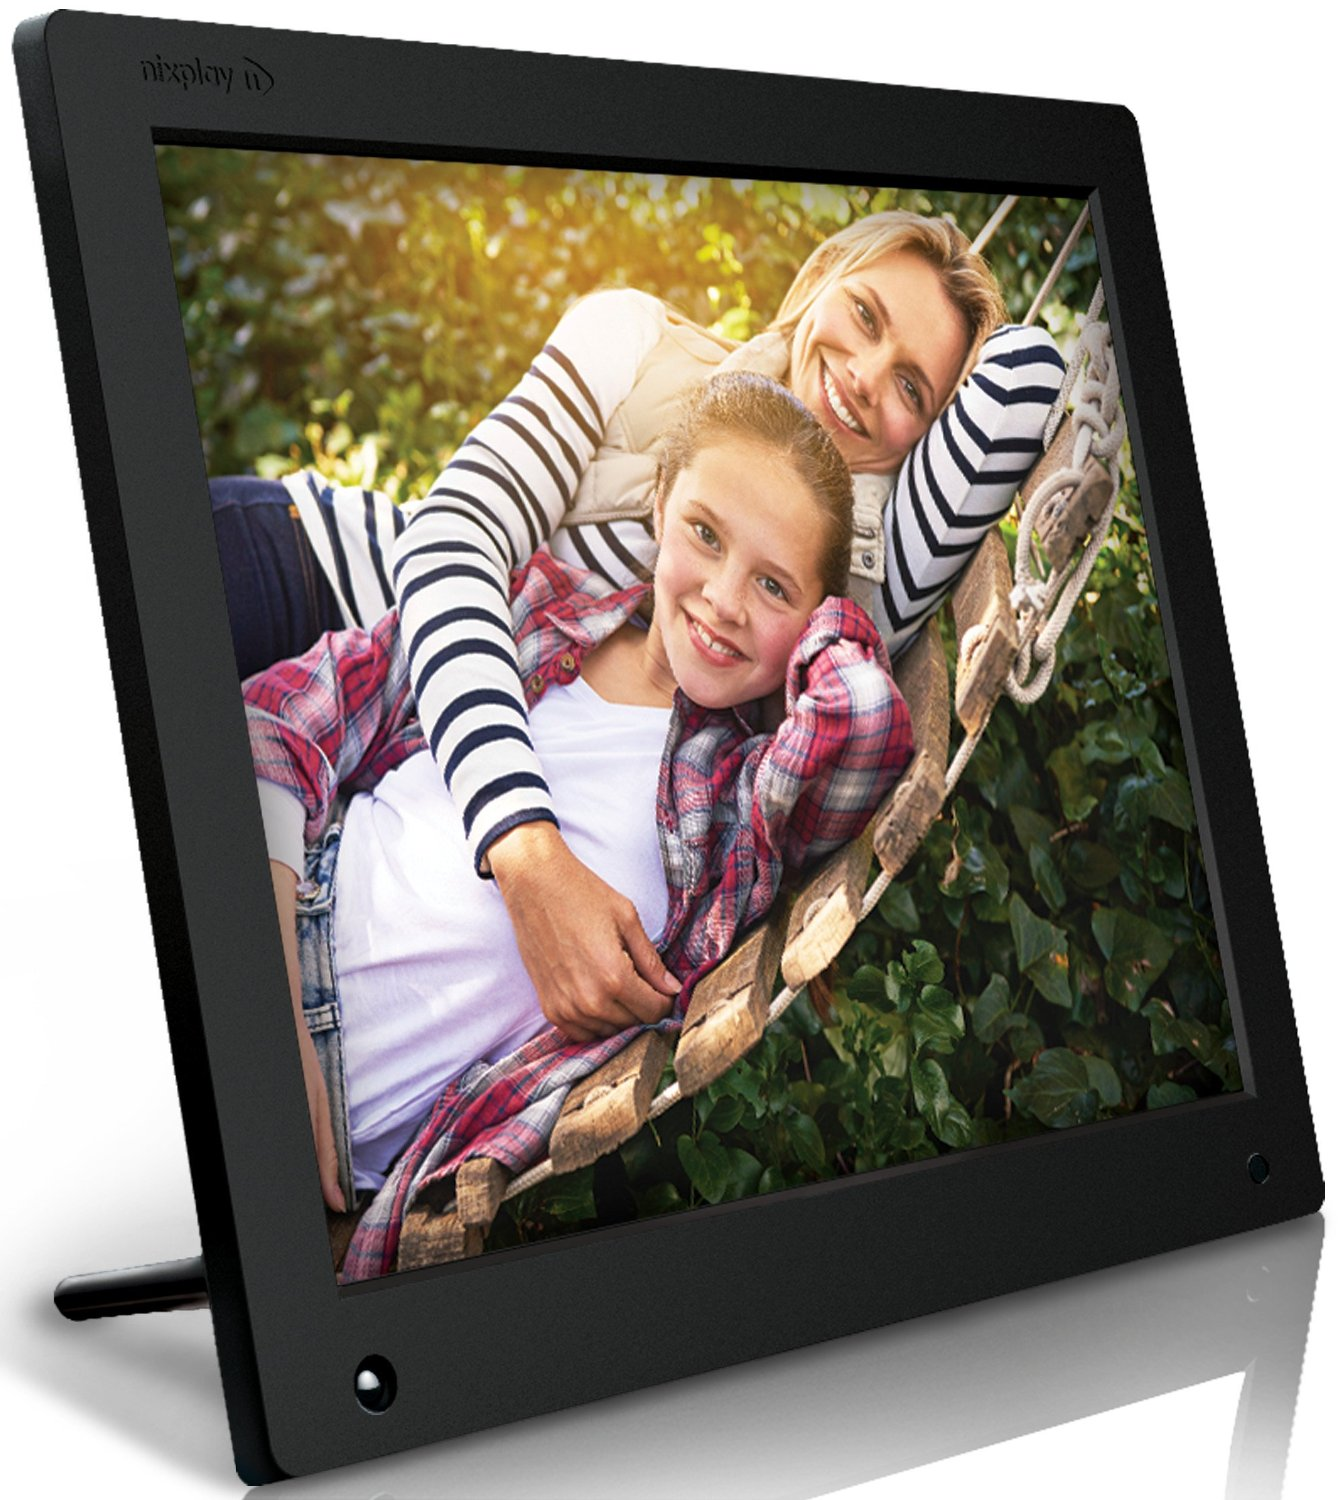 Nixplay Original 15 Inch Wifi Cloud Digital Photo Frame Iphone